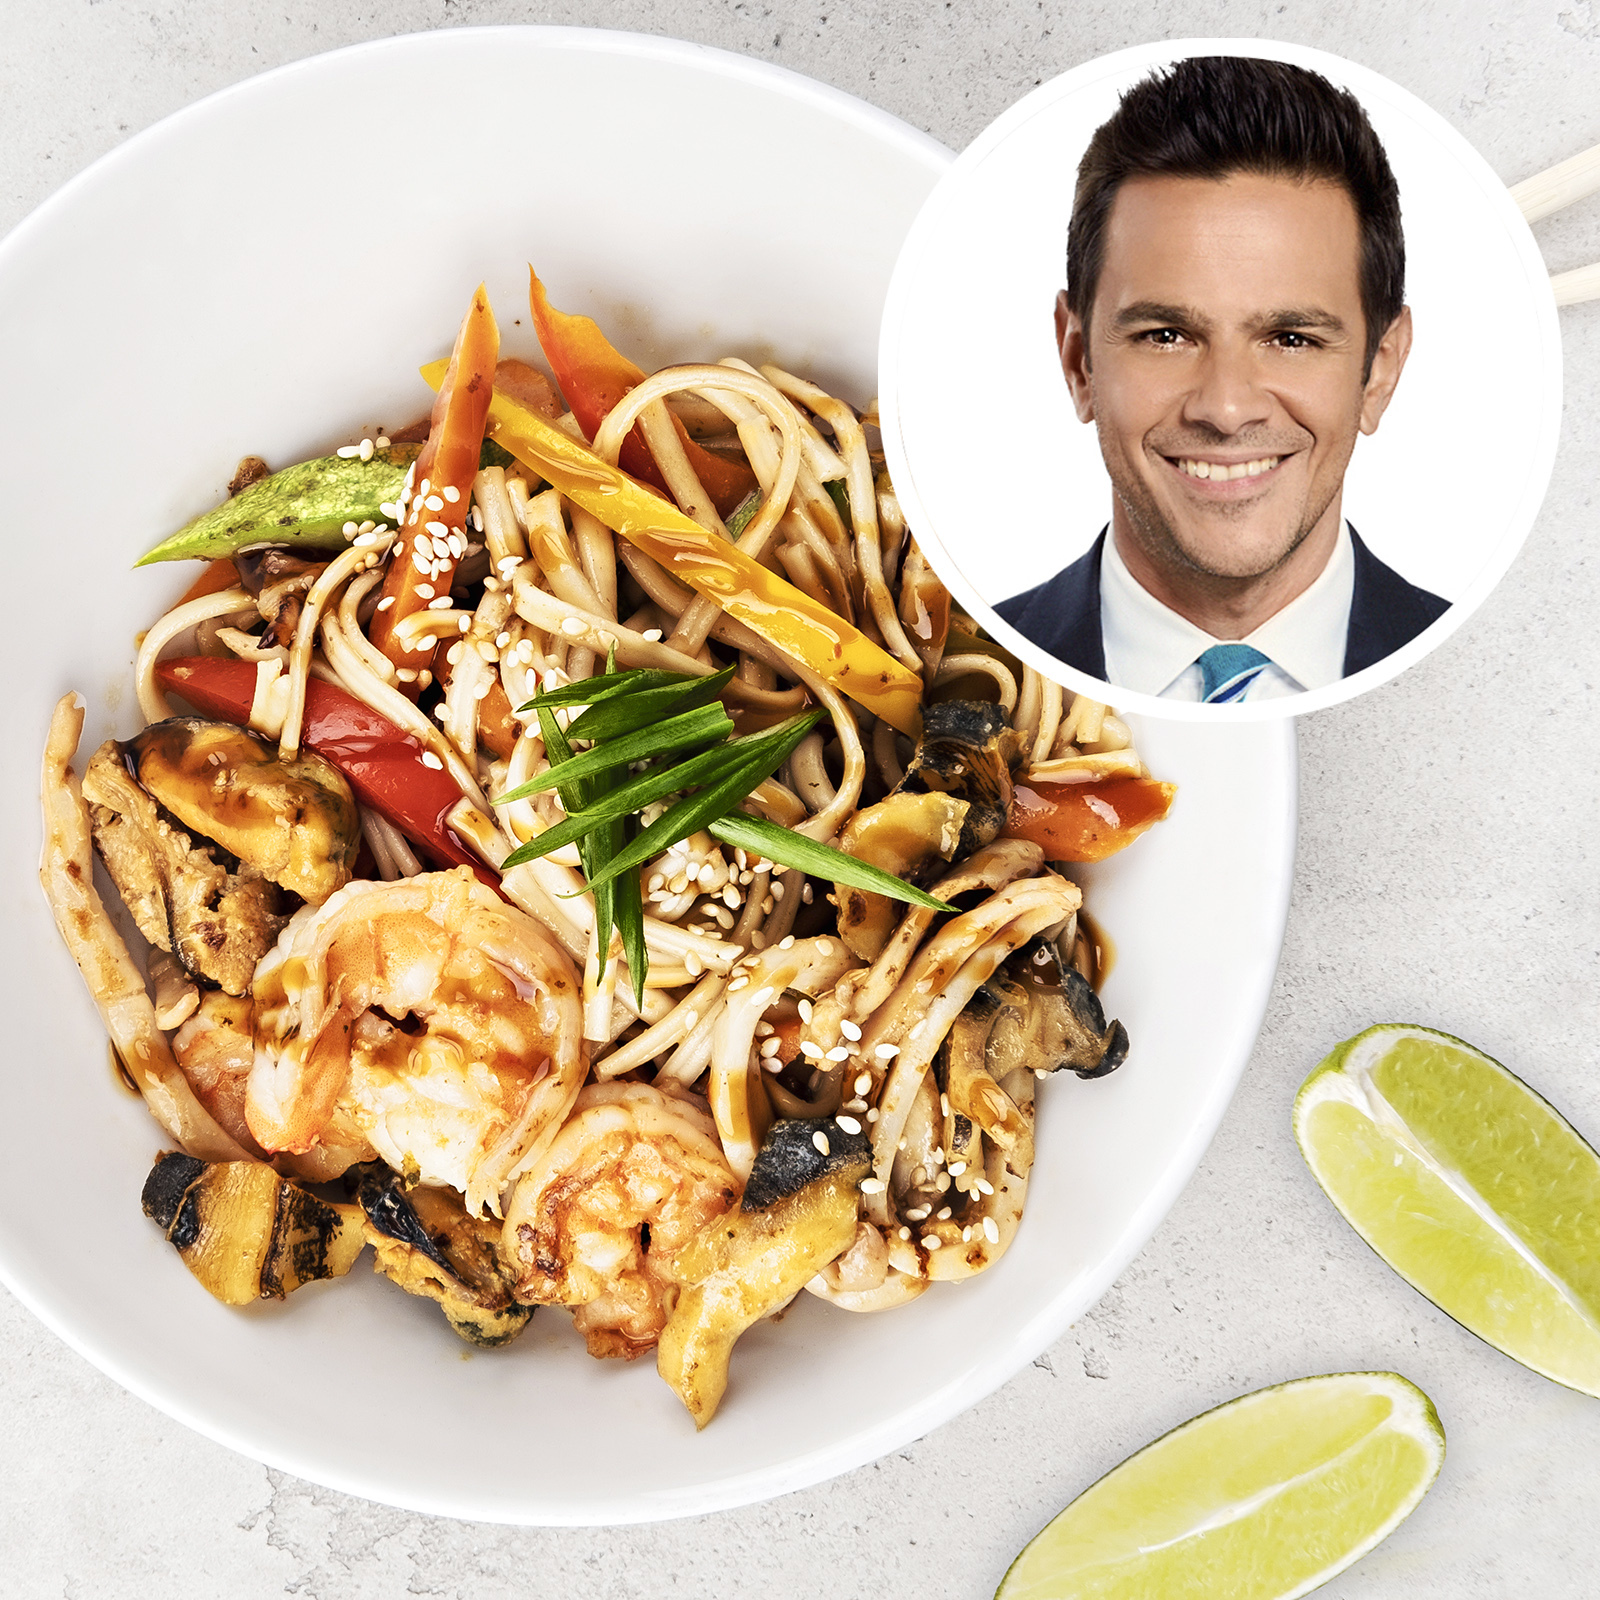 3. Tony Cherchi - Saborealo March 2021 Wok noodles with chicken and shrimp.